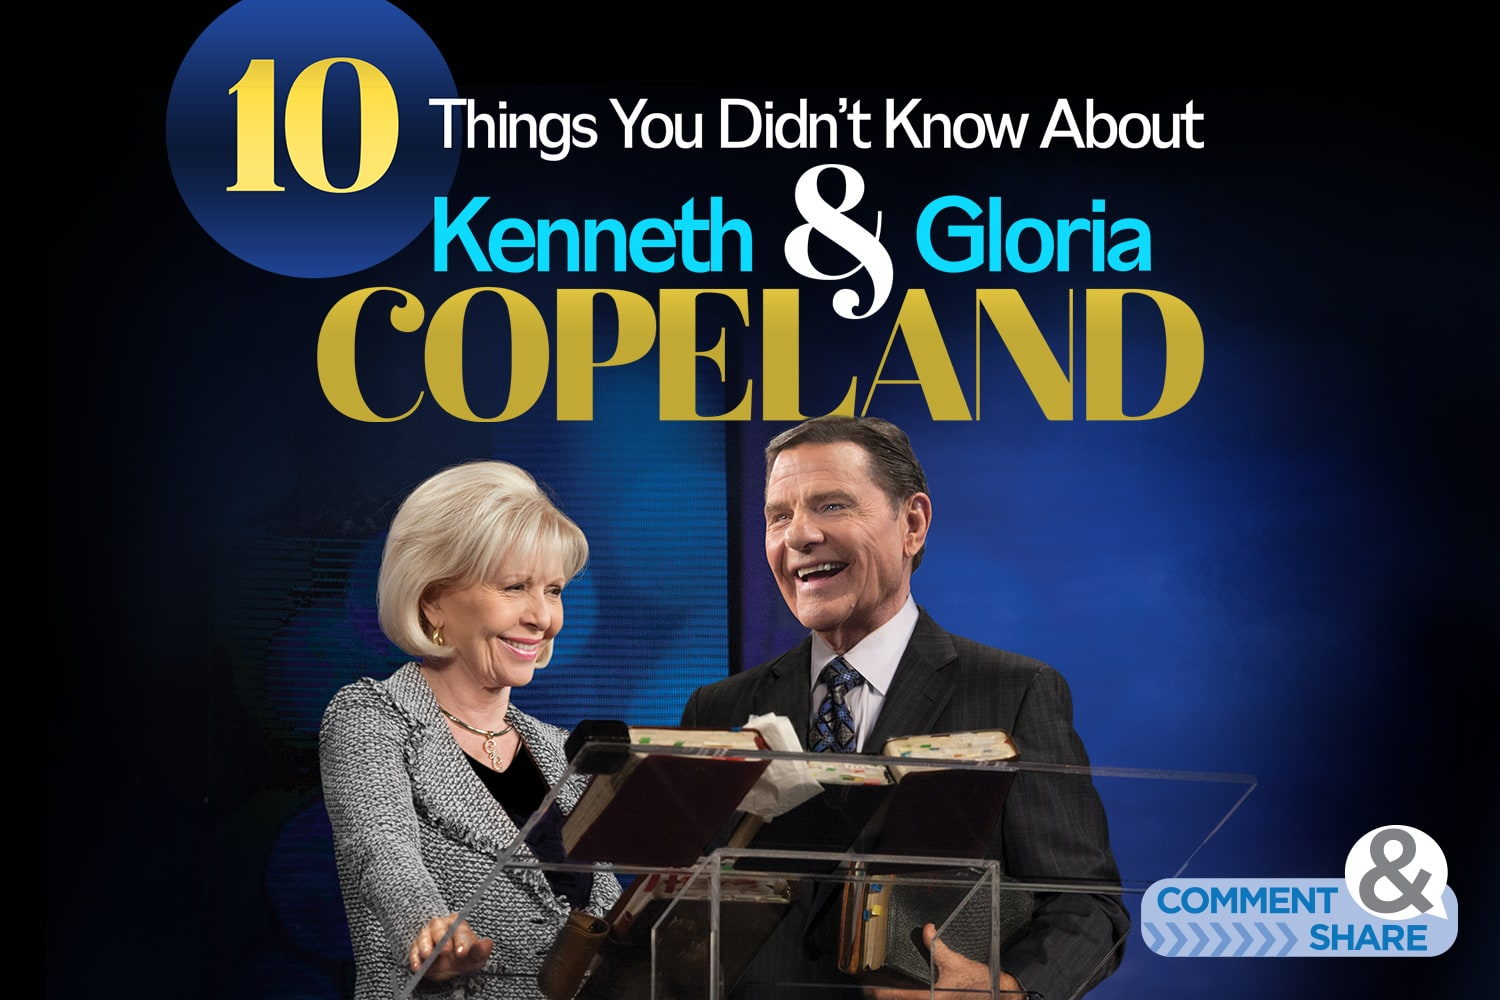 10 Things You Didn't Know About Kenneth and Gloria Copeland